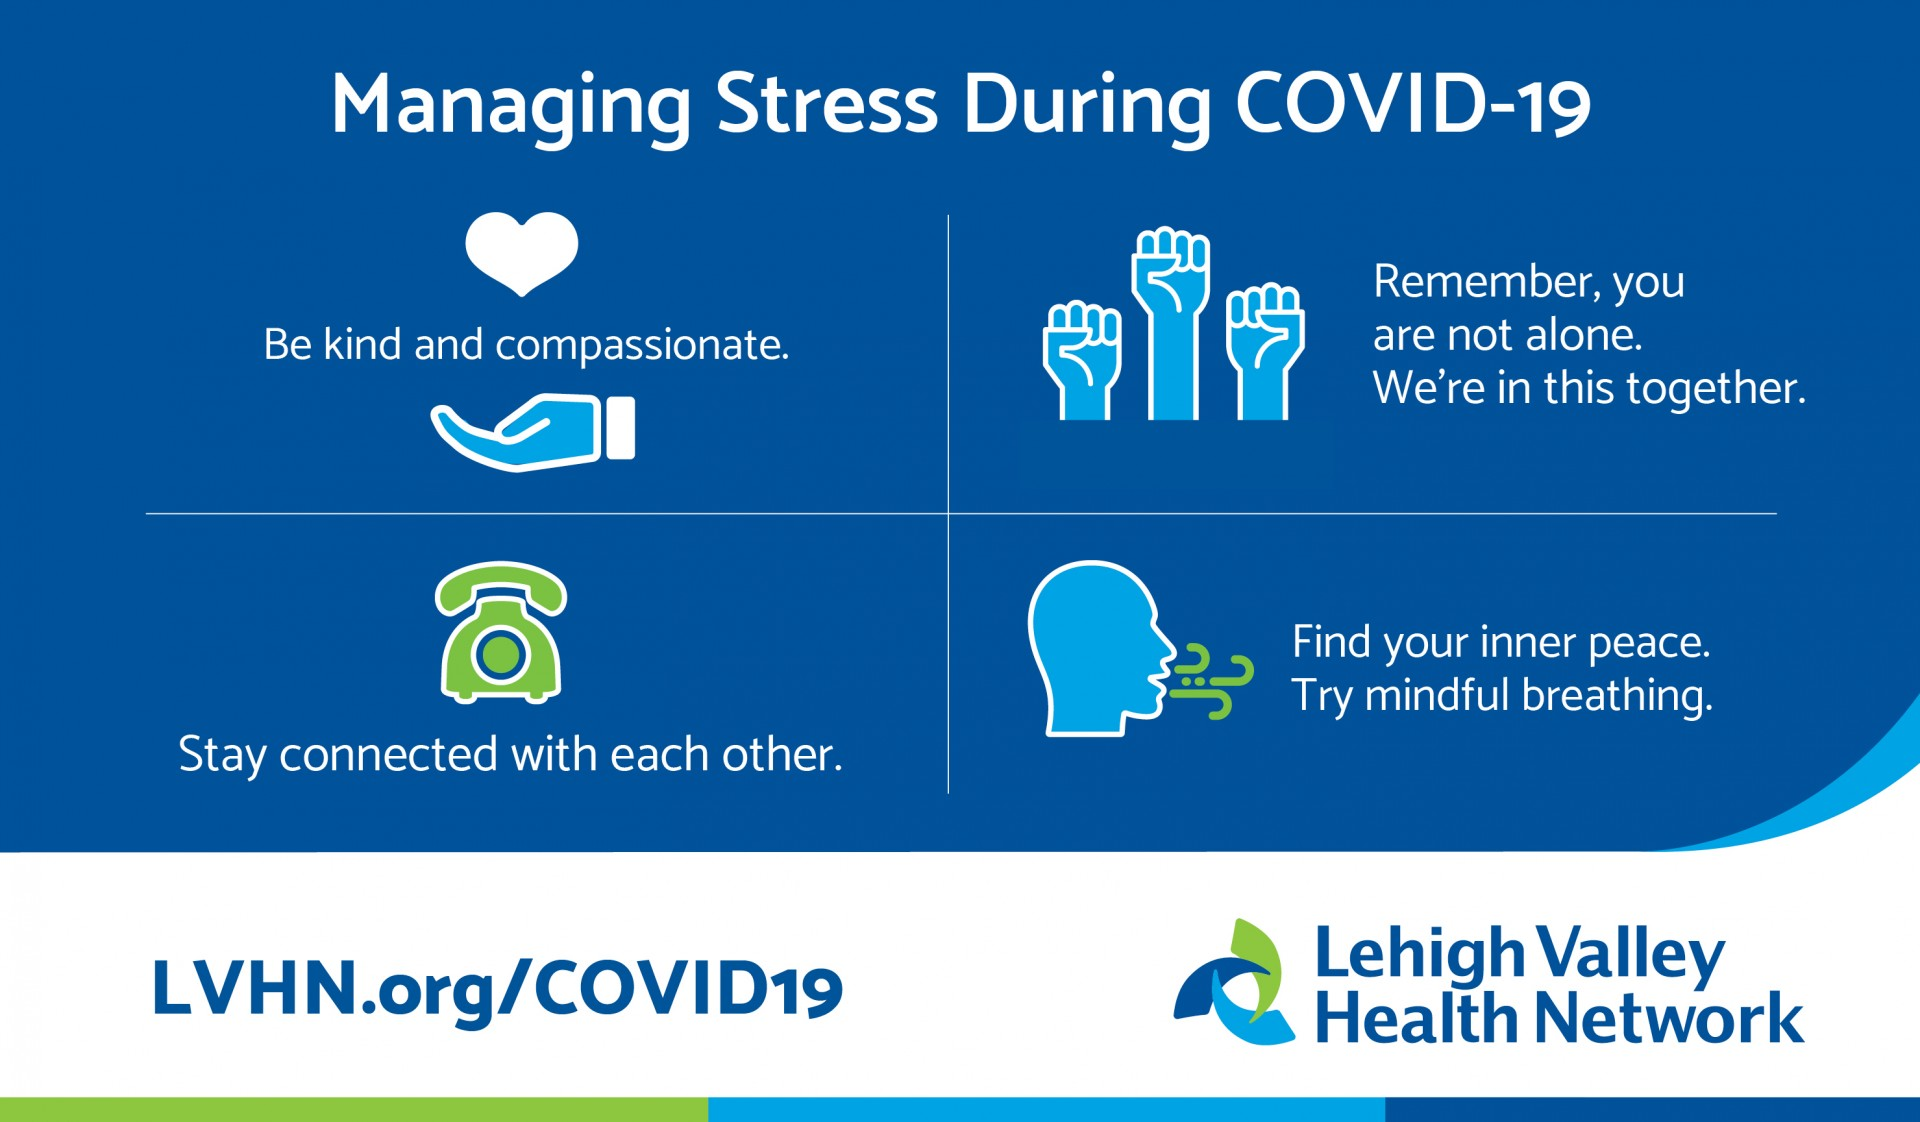 Managing Stress During Covid-19 Outbreak